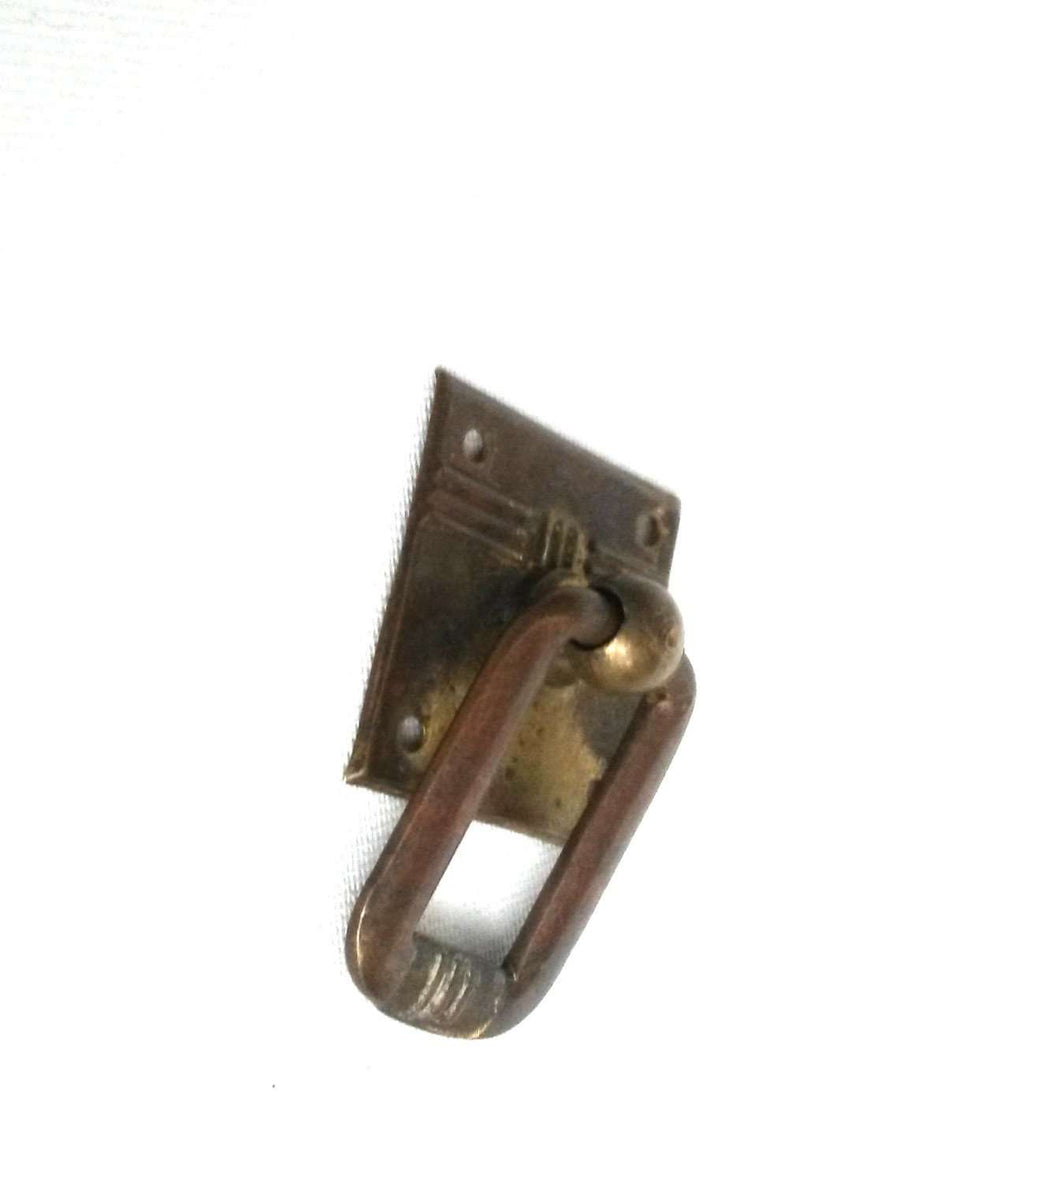 UpperDutch:Hooks and Hardware,Small brass Hanging Drawer Drop Pull / Door Handle